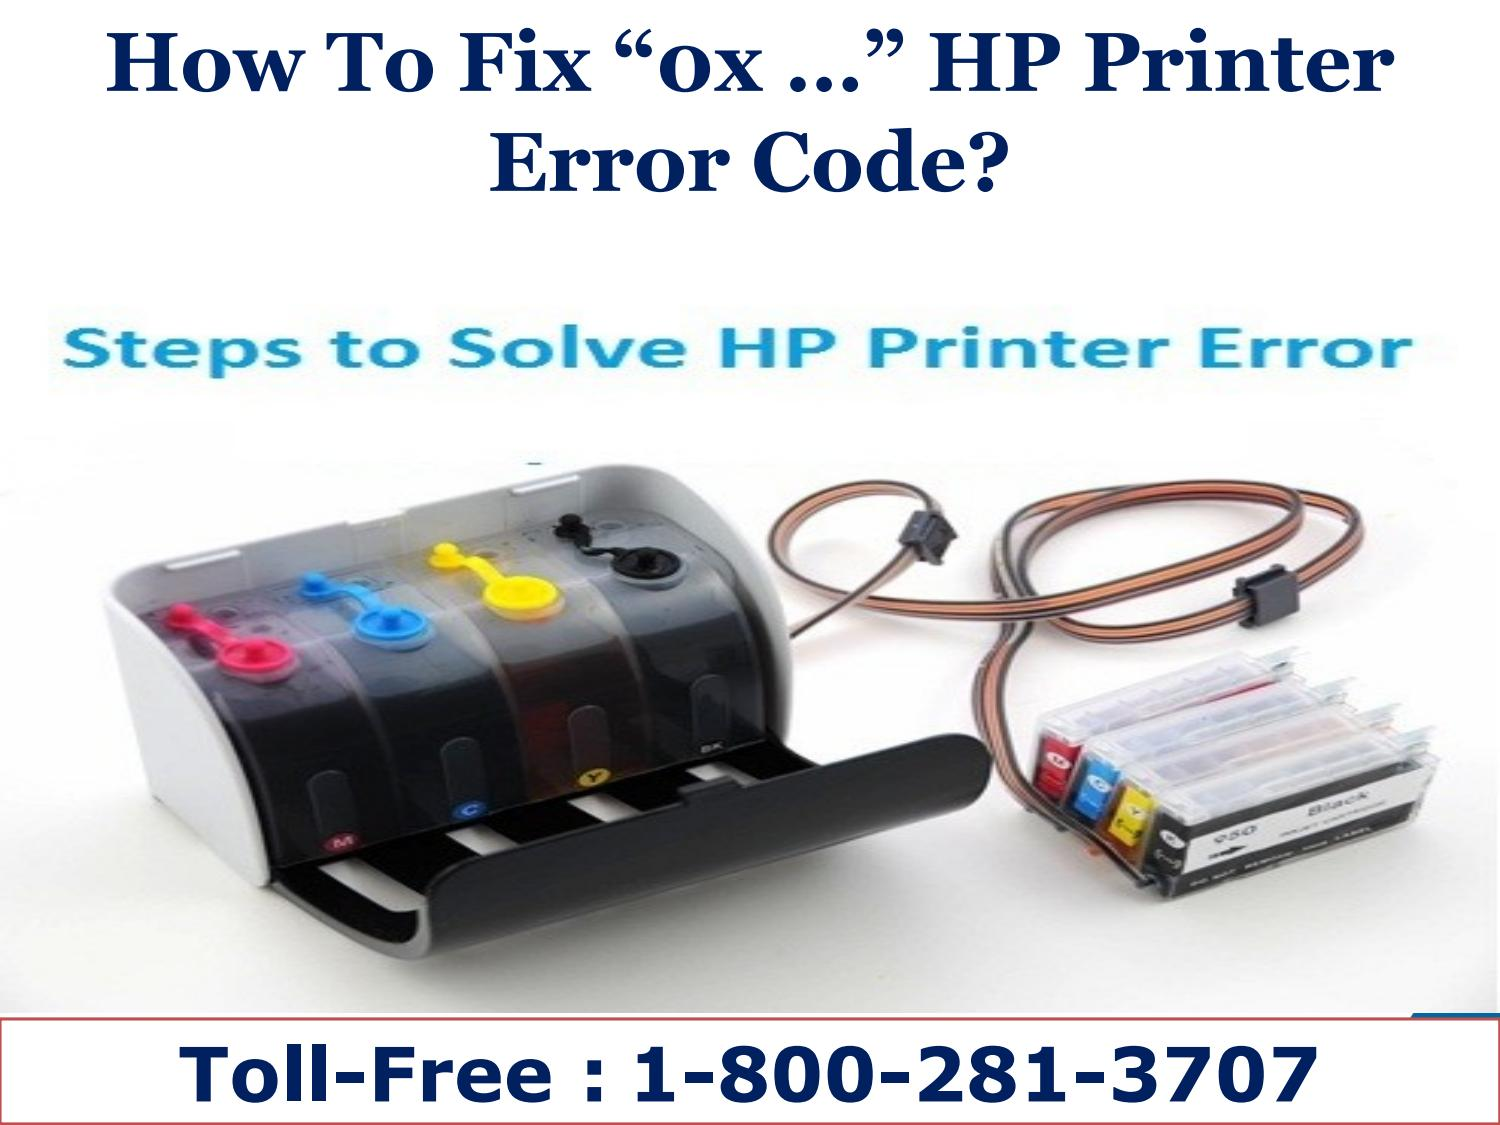 How to fix 0x hp printer error codedial 1 800 281 3707 by hp printer error codedial 1 800 281 3707 by hptechsupport9 issuu biocorpaavc Image collections